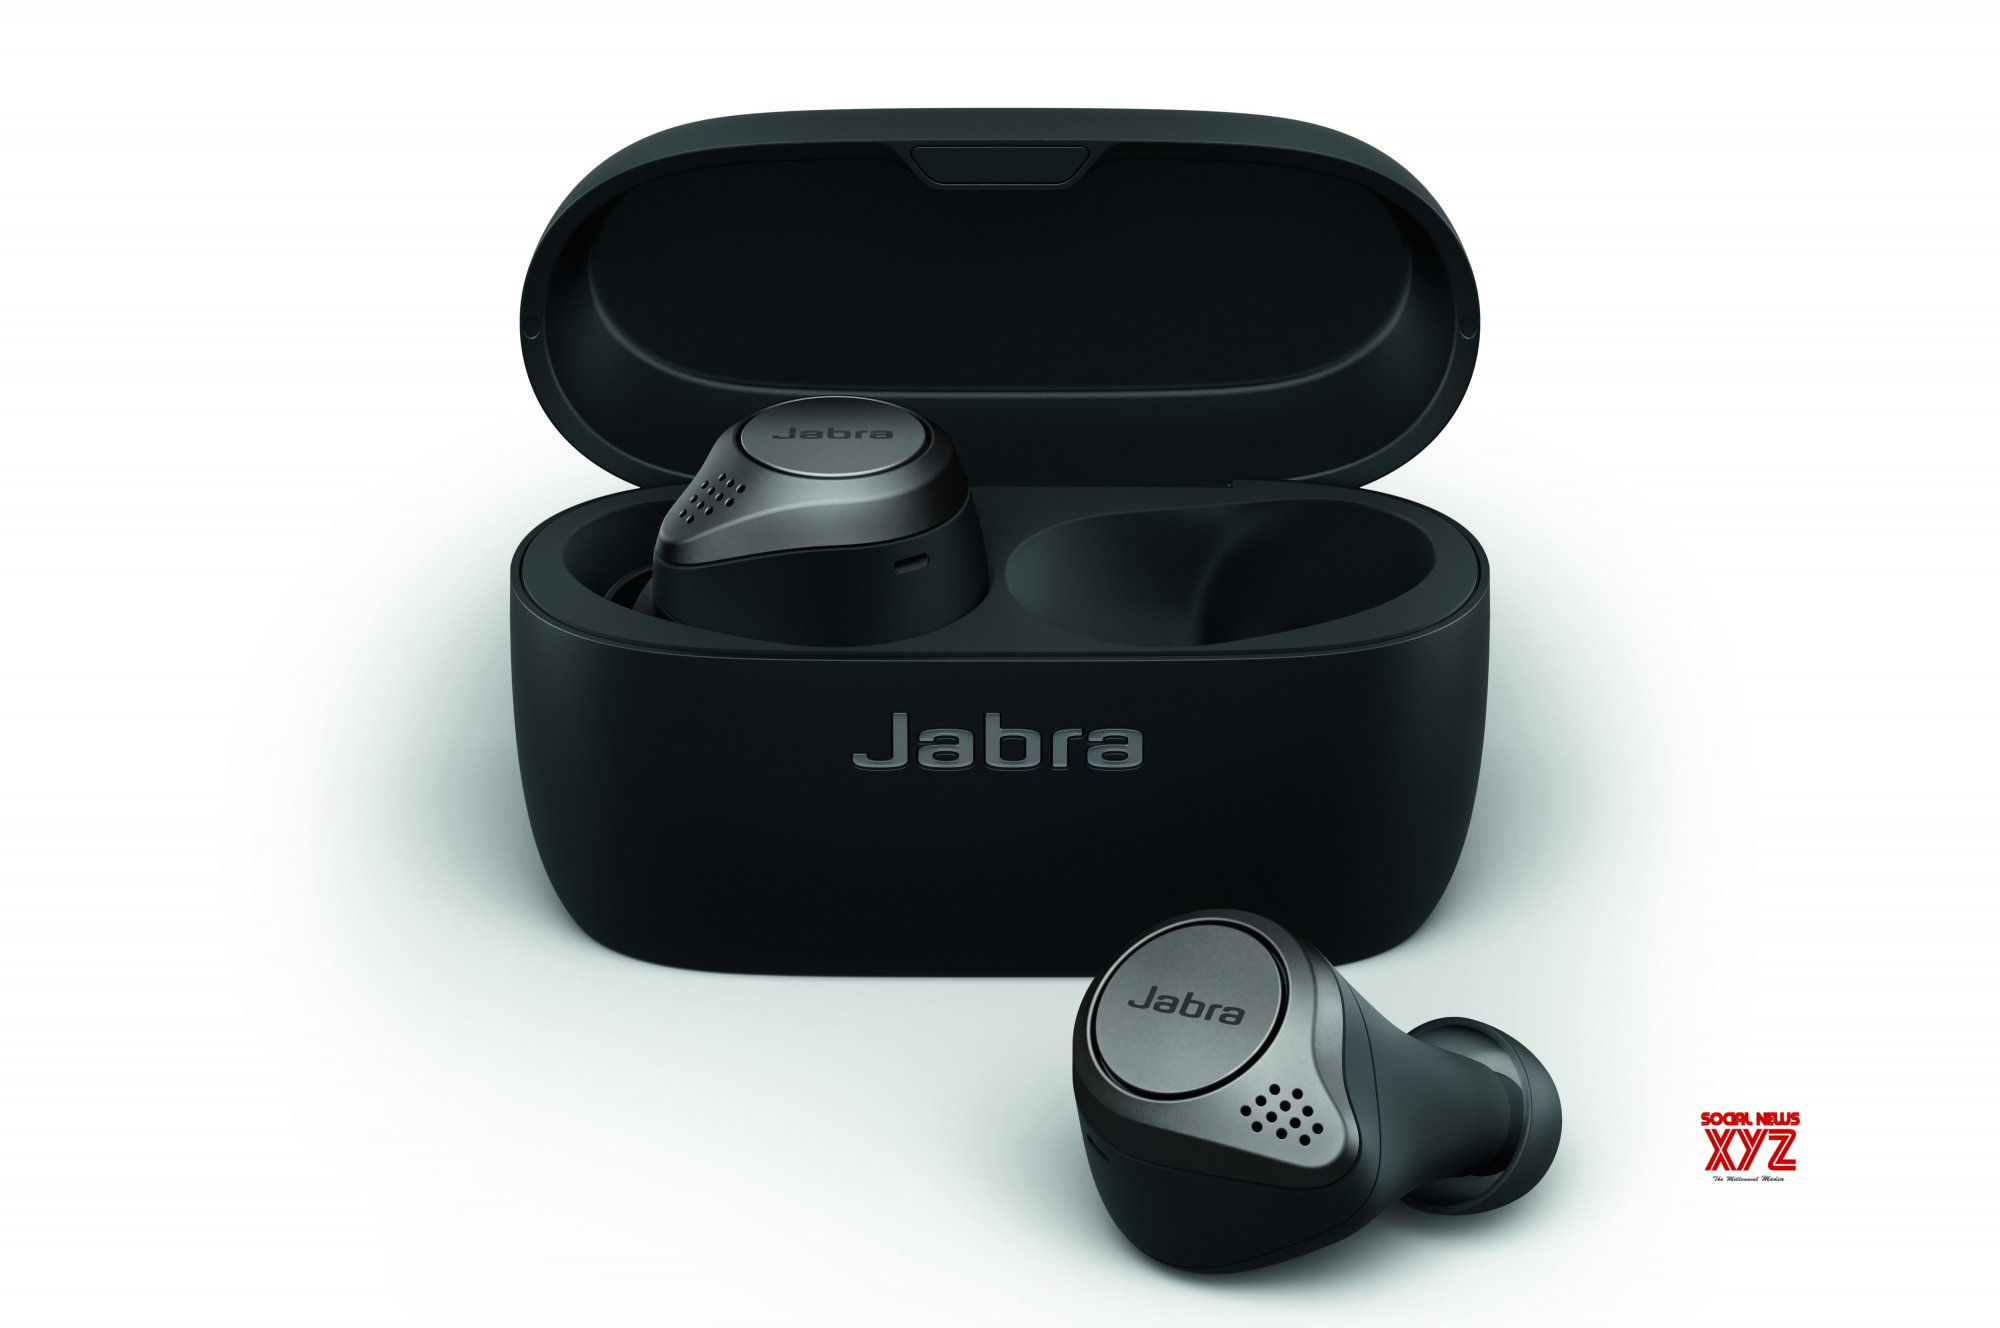 Jabra Elite Active 75t Launched In India For Rs 16 999 Social News Xyz